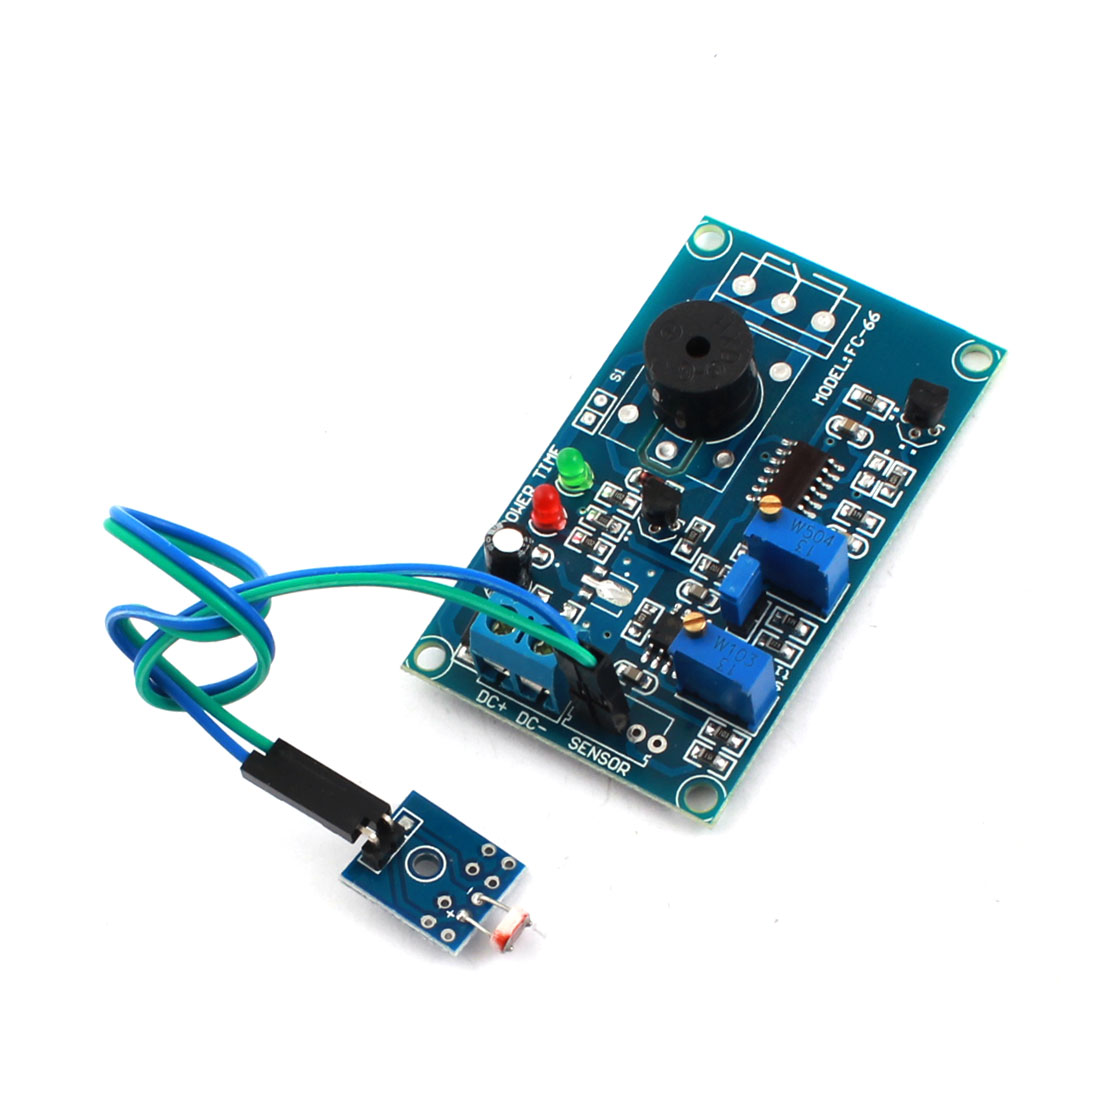 FC-66 DC 5V 0-20S NO Light Trigged Photoresistor Sensor Delay Alarm Buzzer PCB Circuit Module